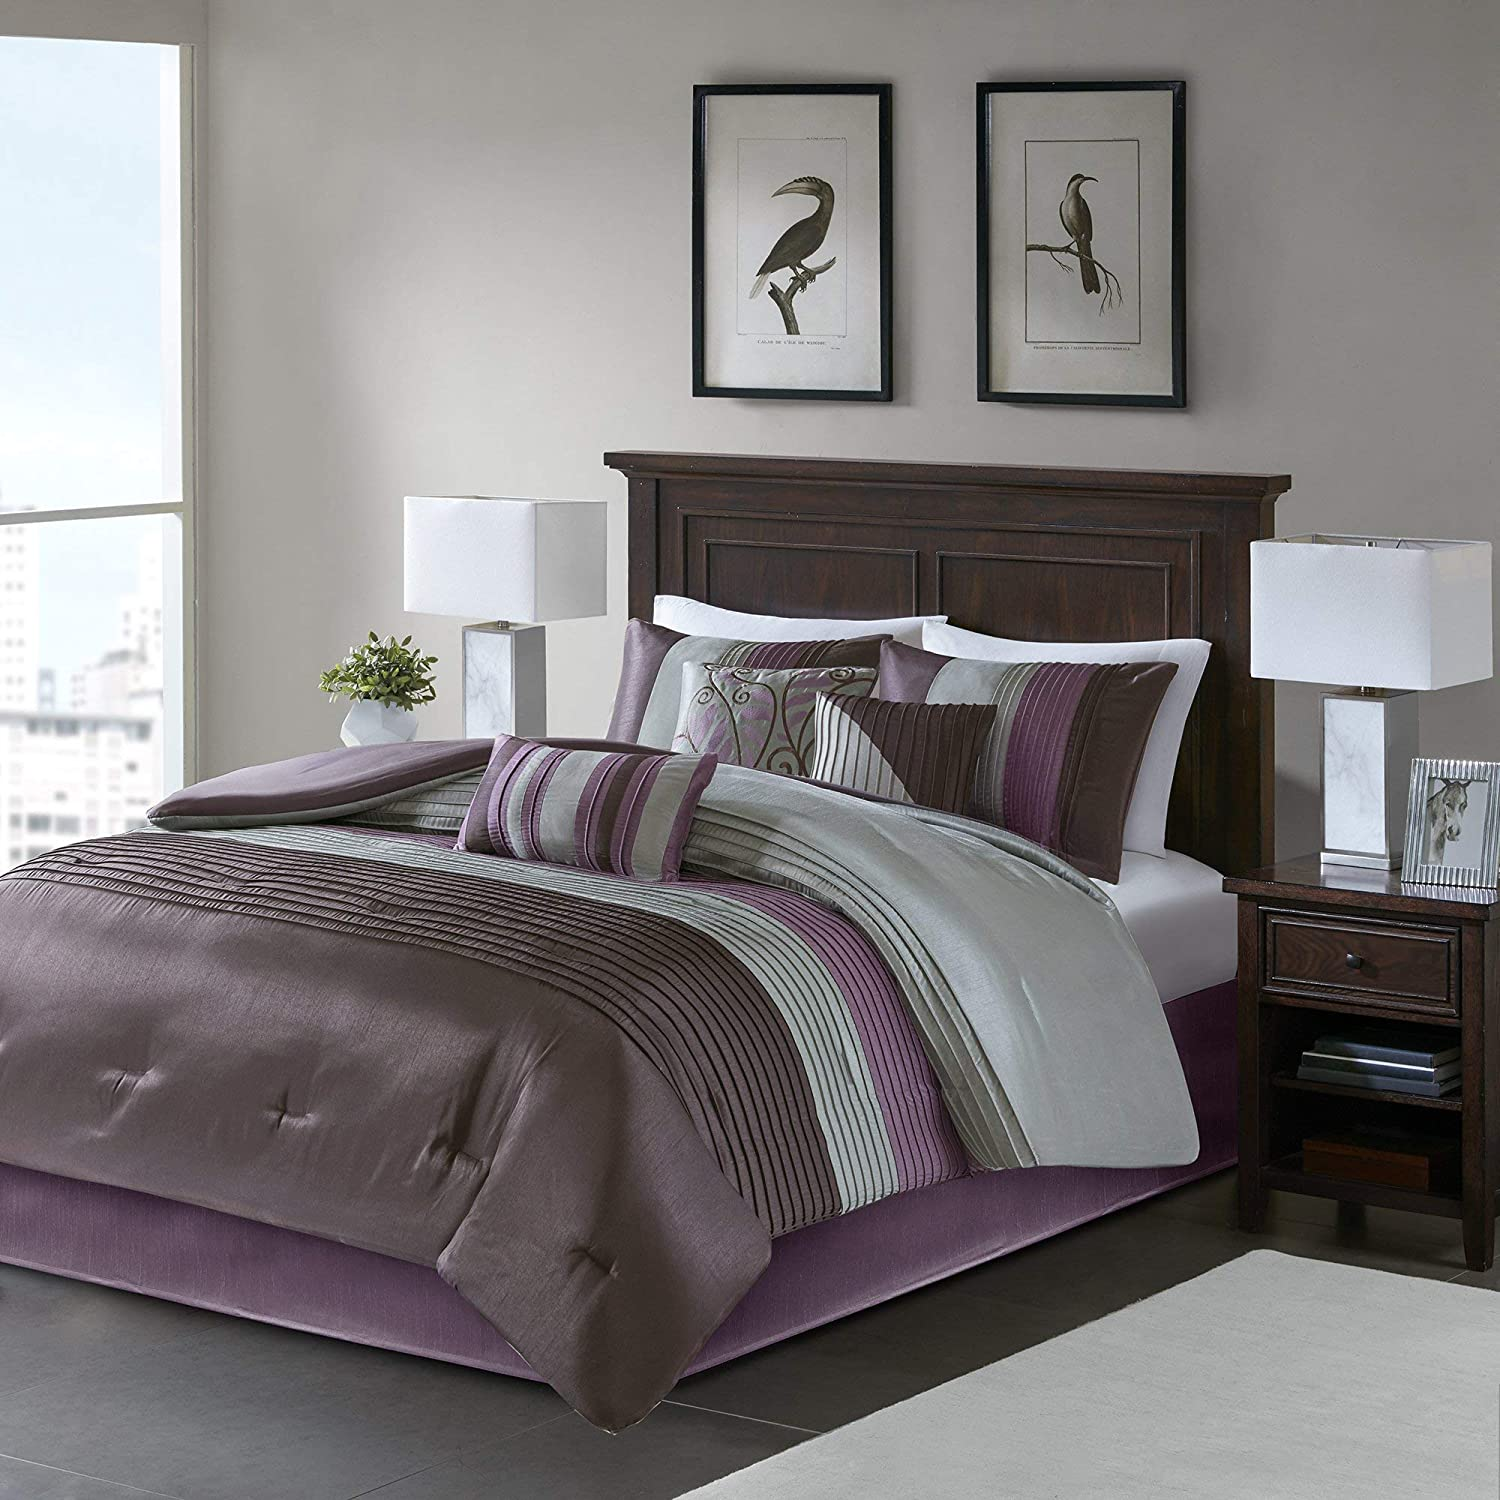 Madison Park Amherst Queen Size Bed Comforter Set Bed in A Bag - Purple, Grey, Pieced Stripes – 7 Pieces Bedding Sets – Ultra Soft Microfiber Bedroom Comforters